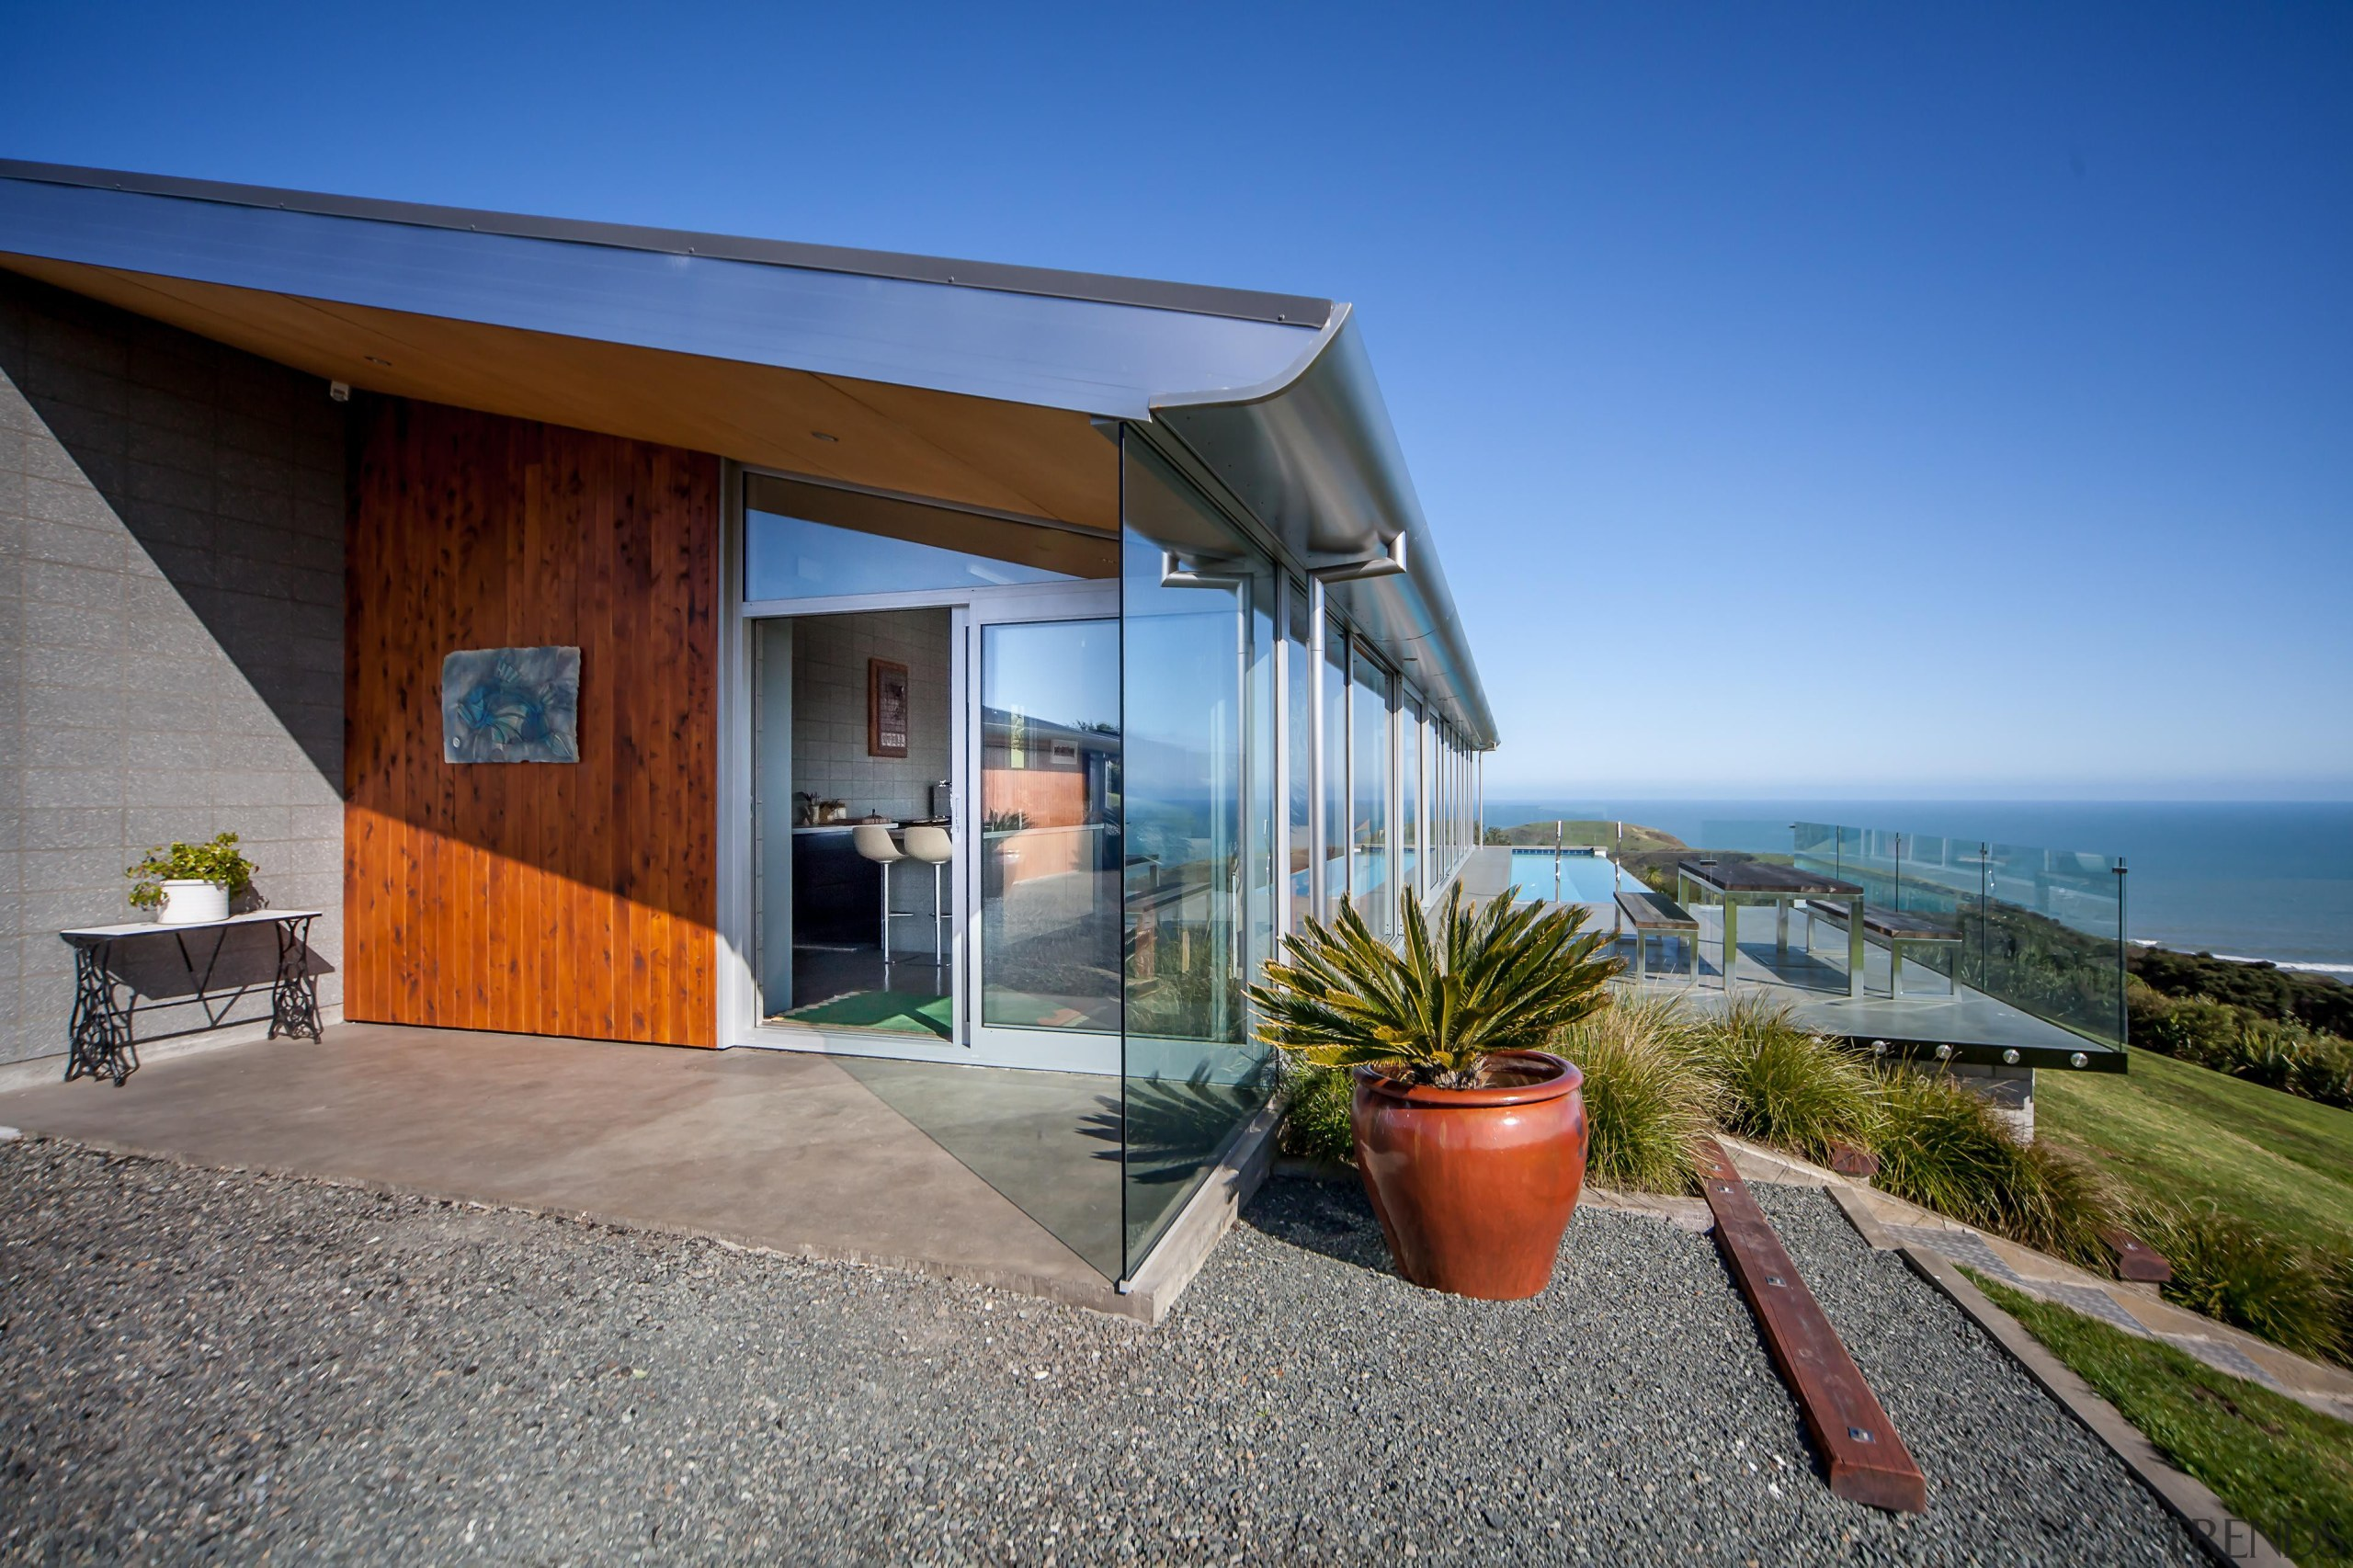 Capturing the spectacular views was a priority for architecture, cottage, estate, facade, home, house, property, real estate, villa, gray, blue